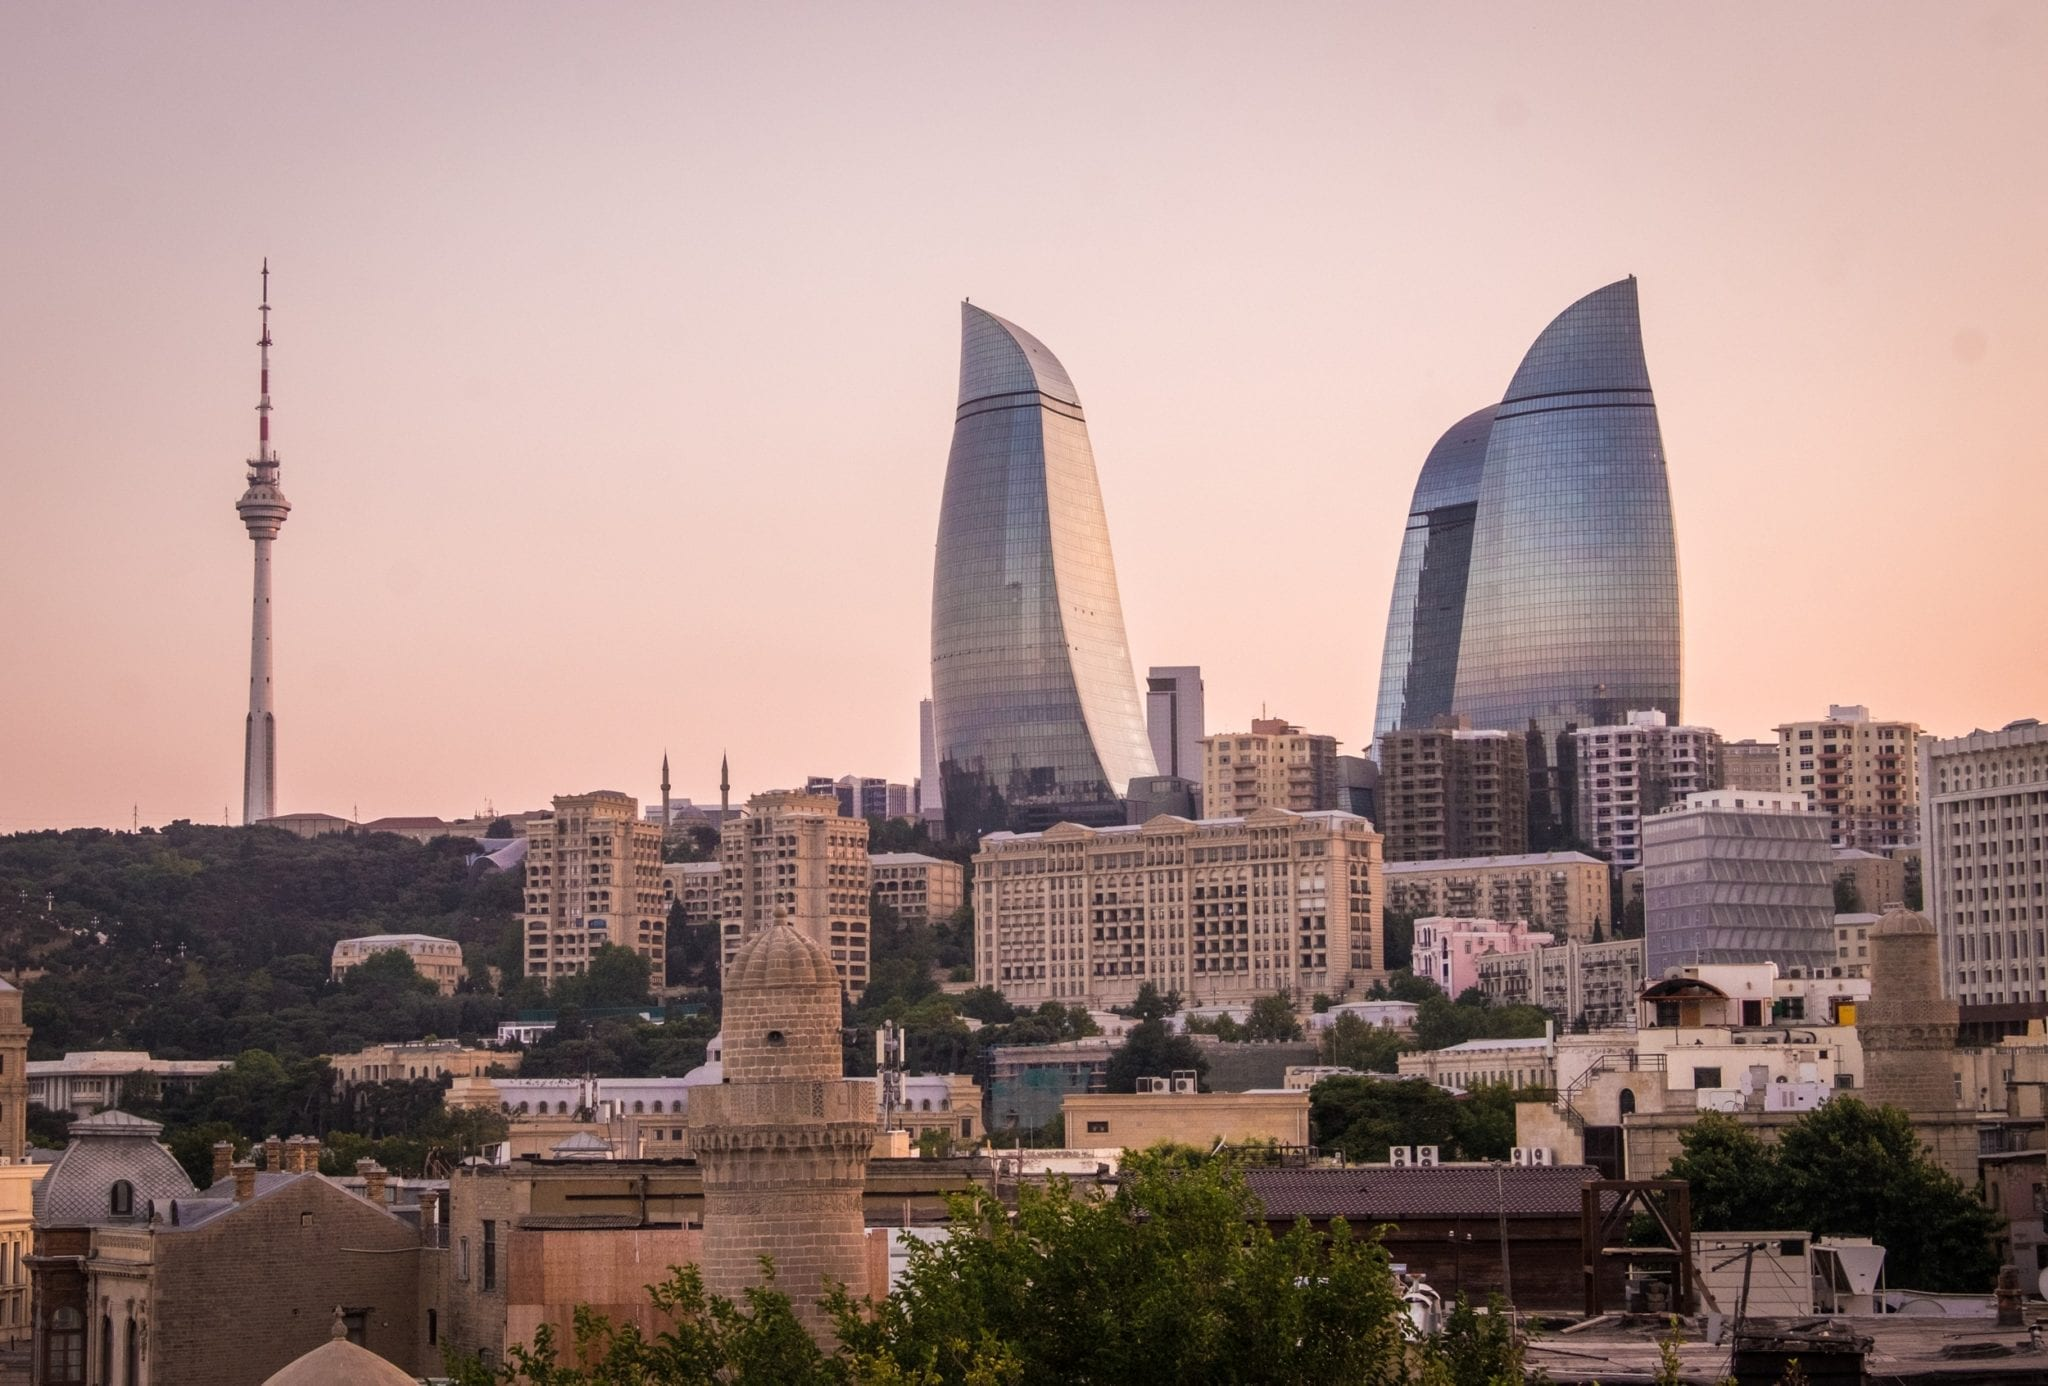 The three Flame Towers in Baku, Azerbaijan look blueish-purple against a pink sky at dusk. Underneath are smaller buildings and to the left is the city's tall, skinny TV tower.